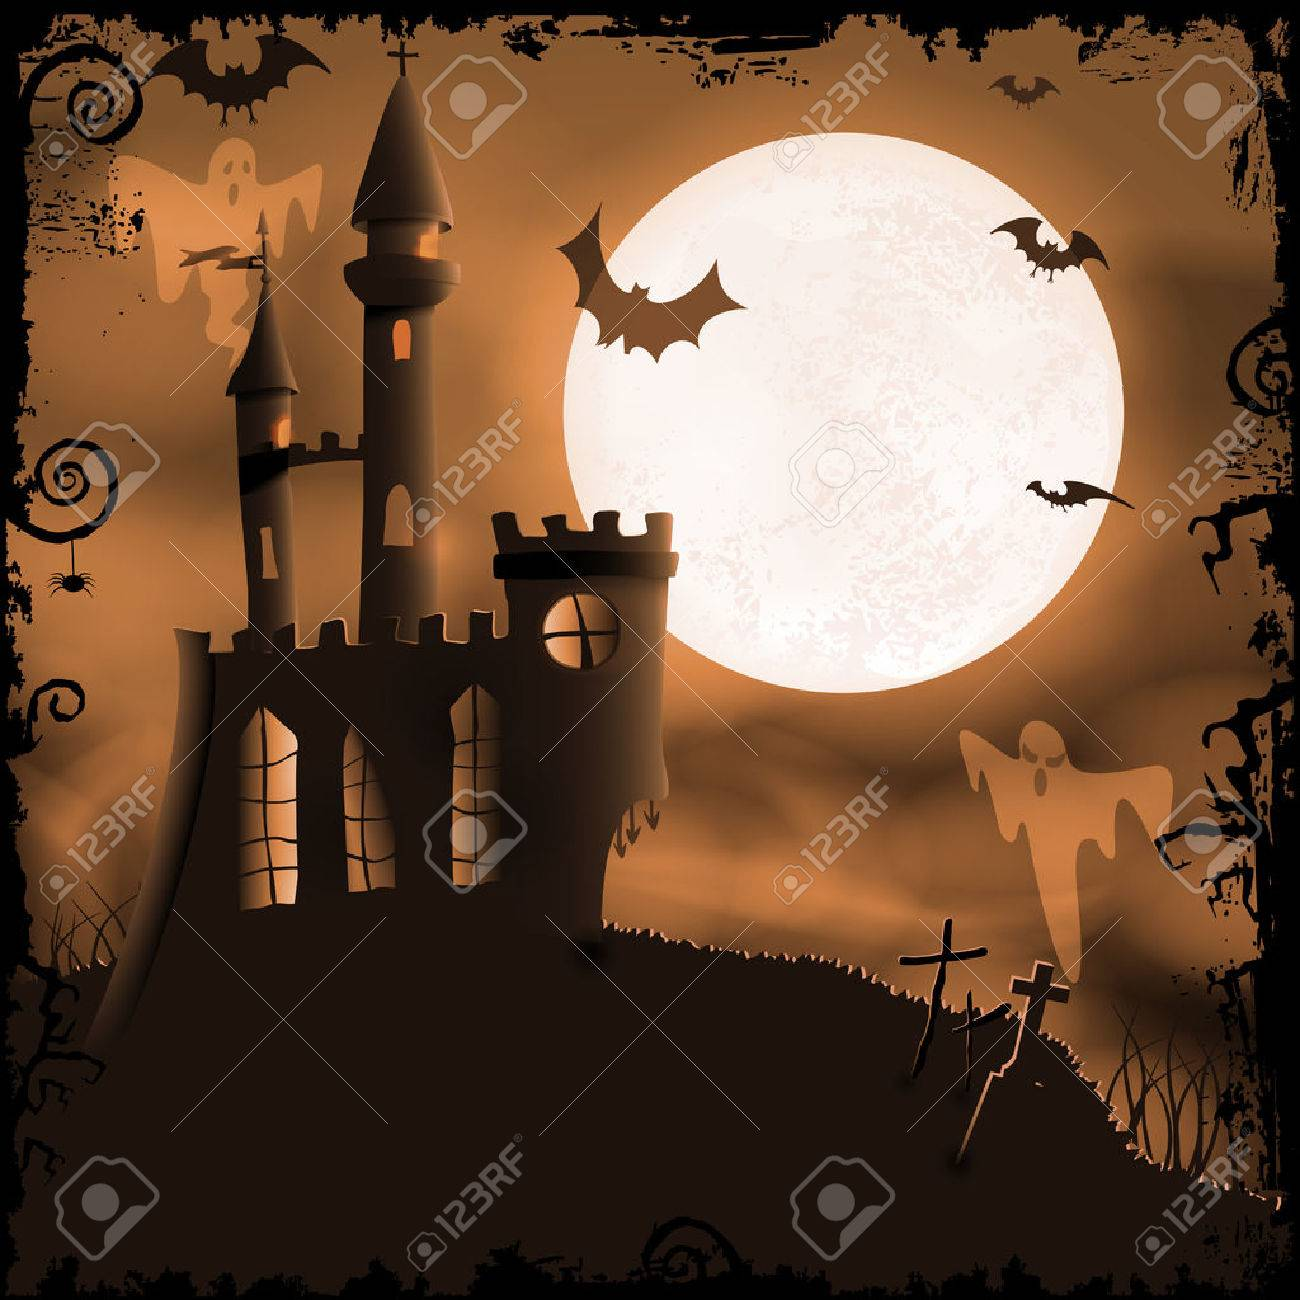 Halloween background with haunted castle, bats, ghosts, full moon and  grunge elements Stock Vector - 22284113